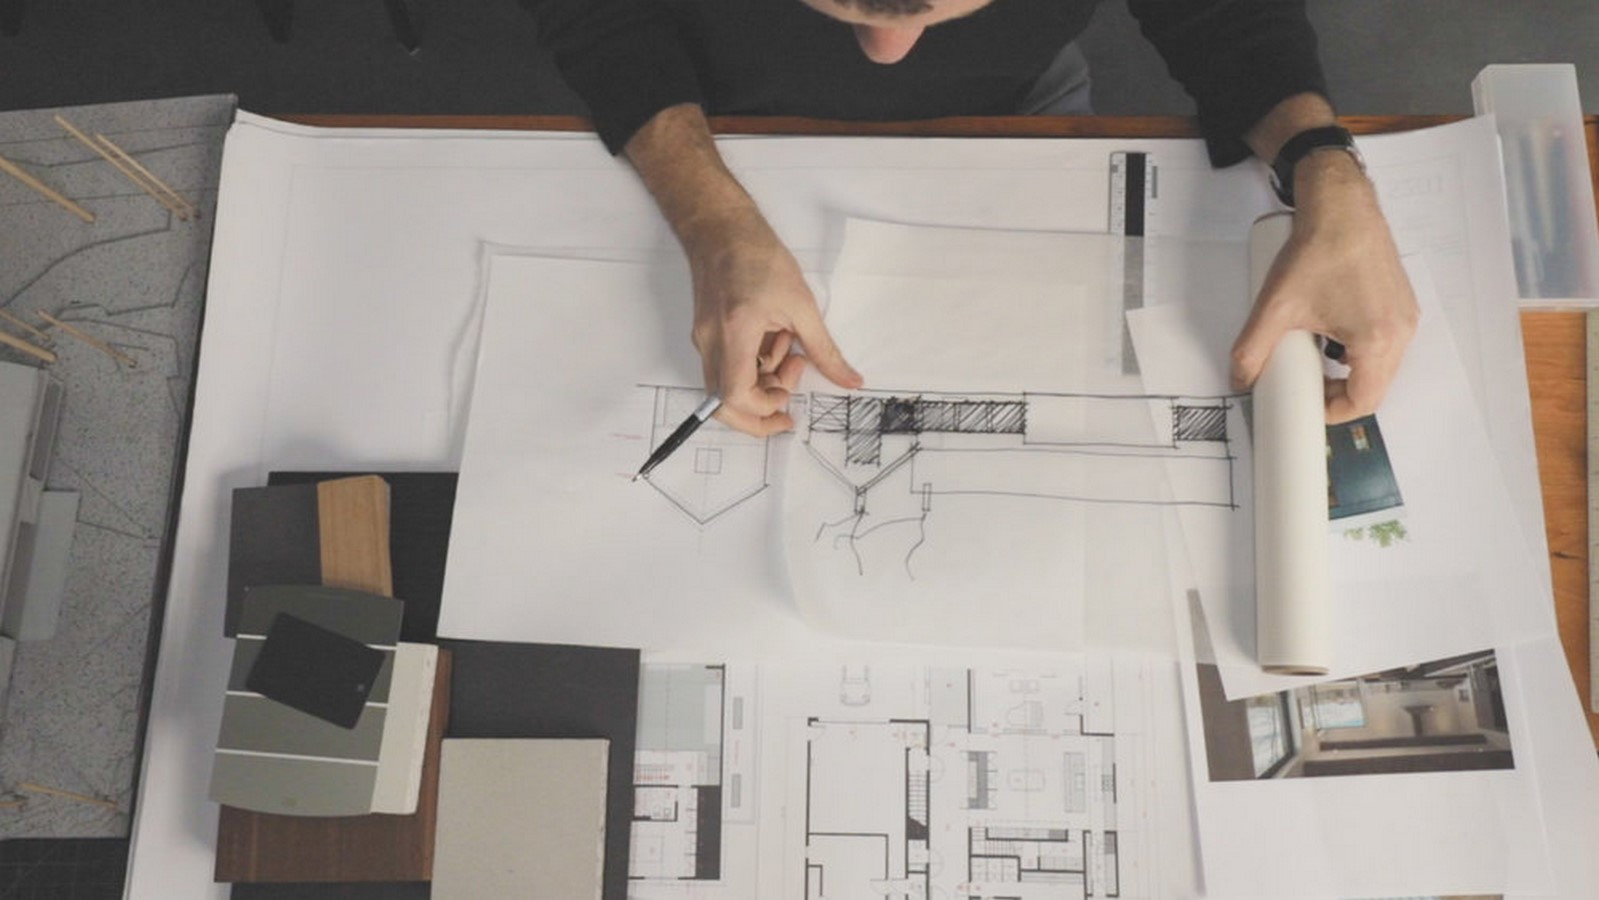 10 youtubers to watch for architectural model making-30X40 Design Workshop - Sheet2